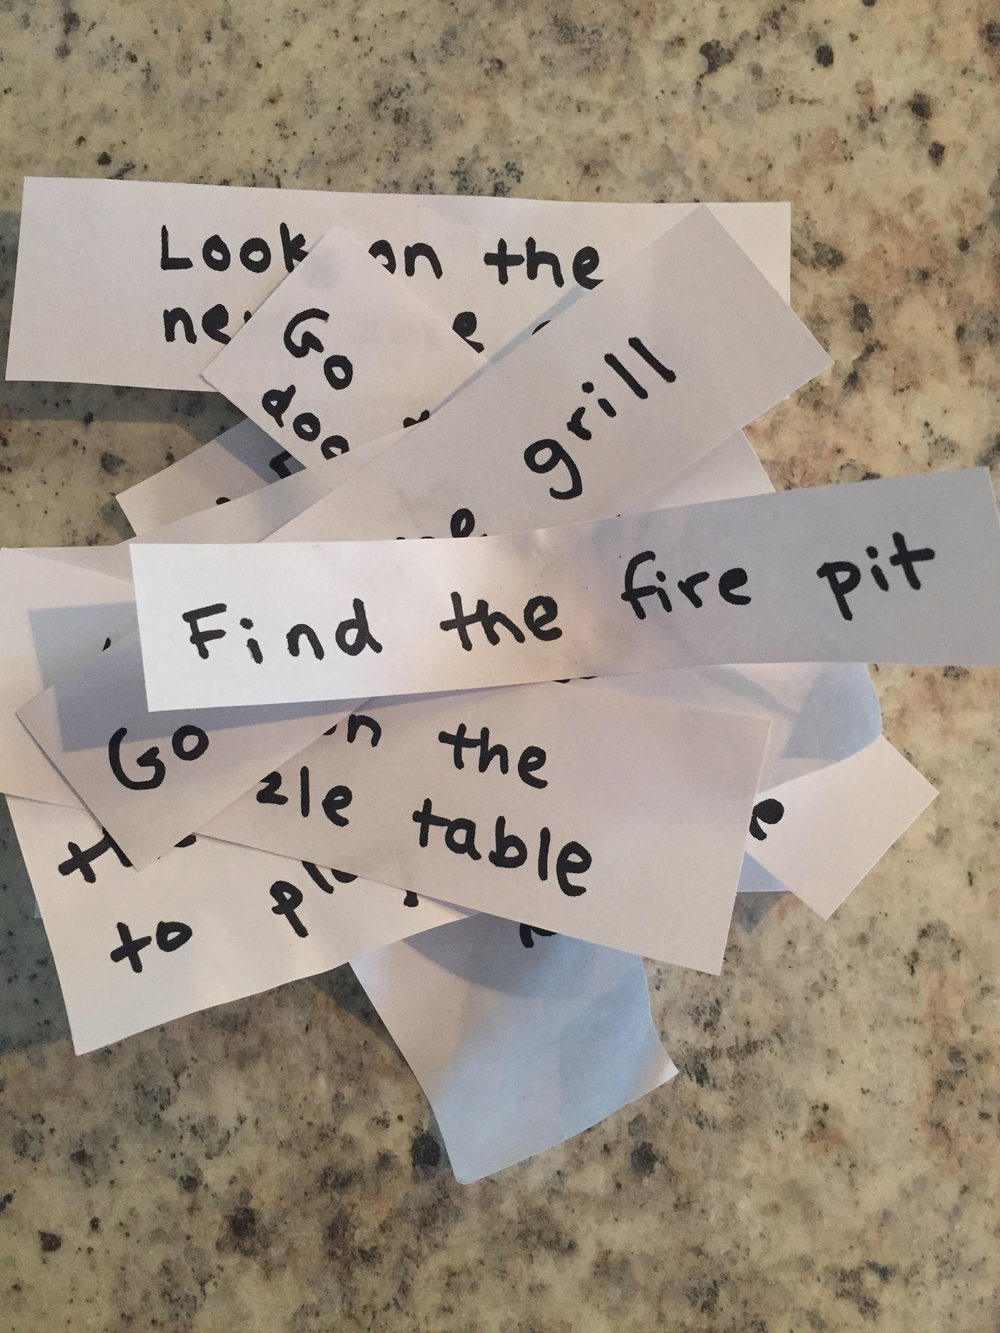 Clues for a kid-friendly  treasure hunt